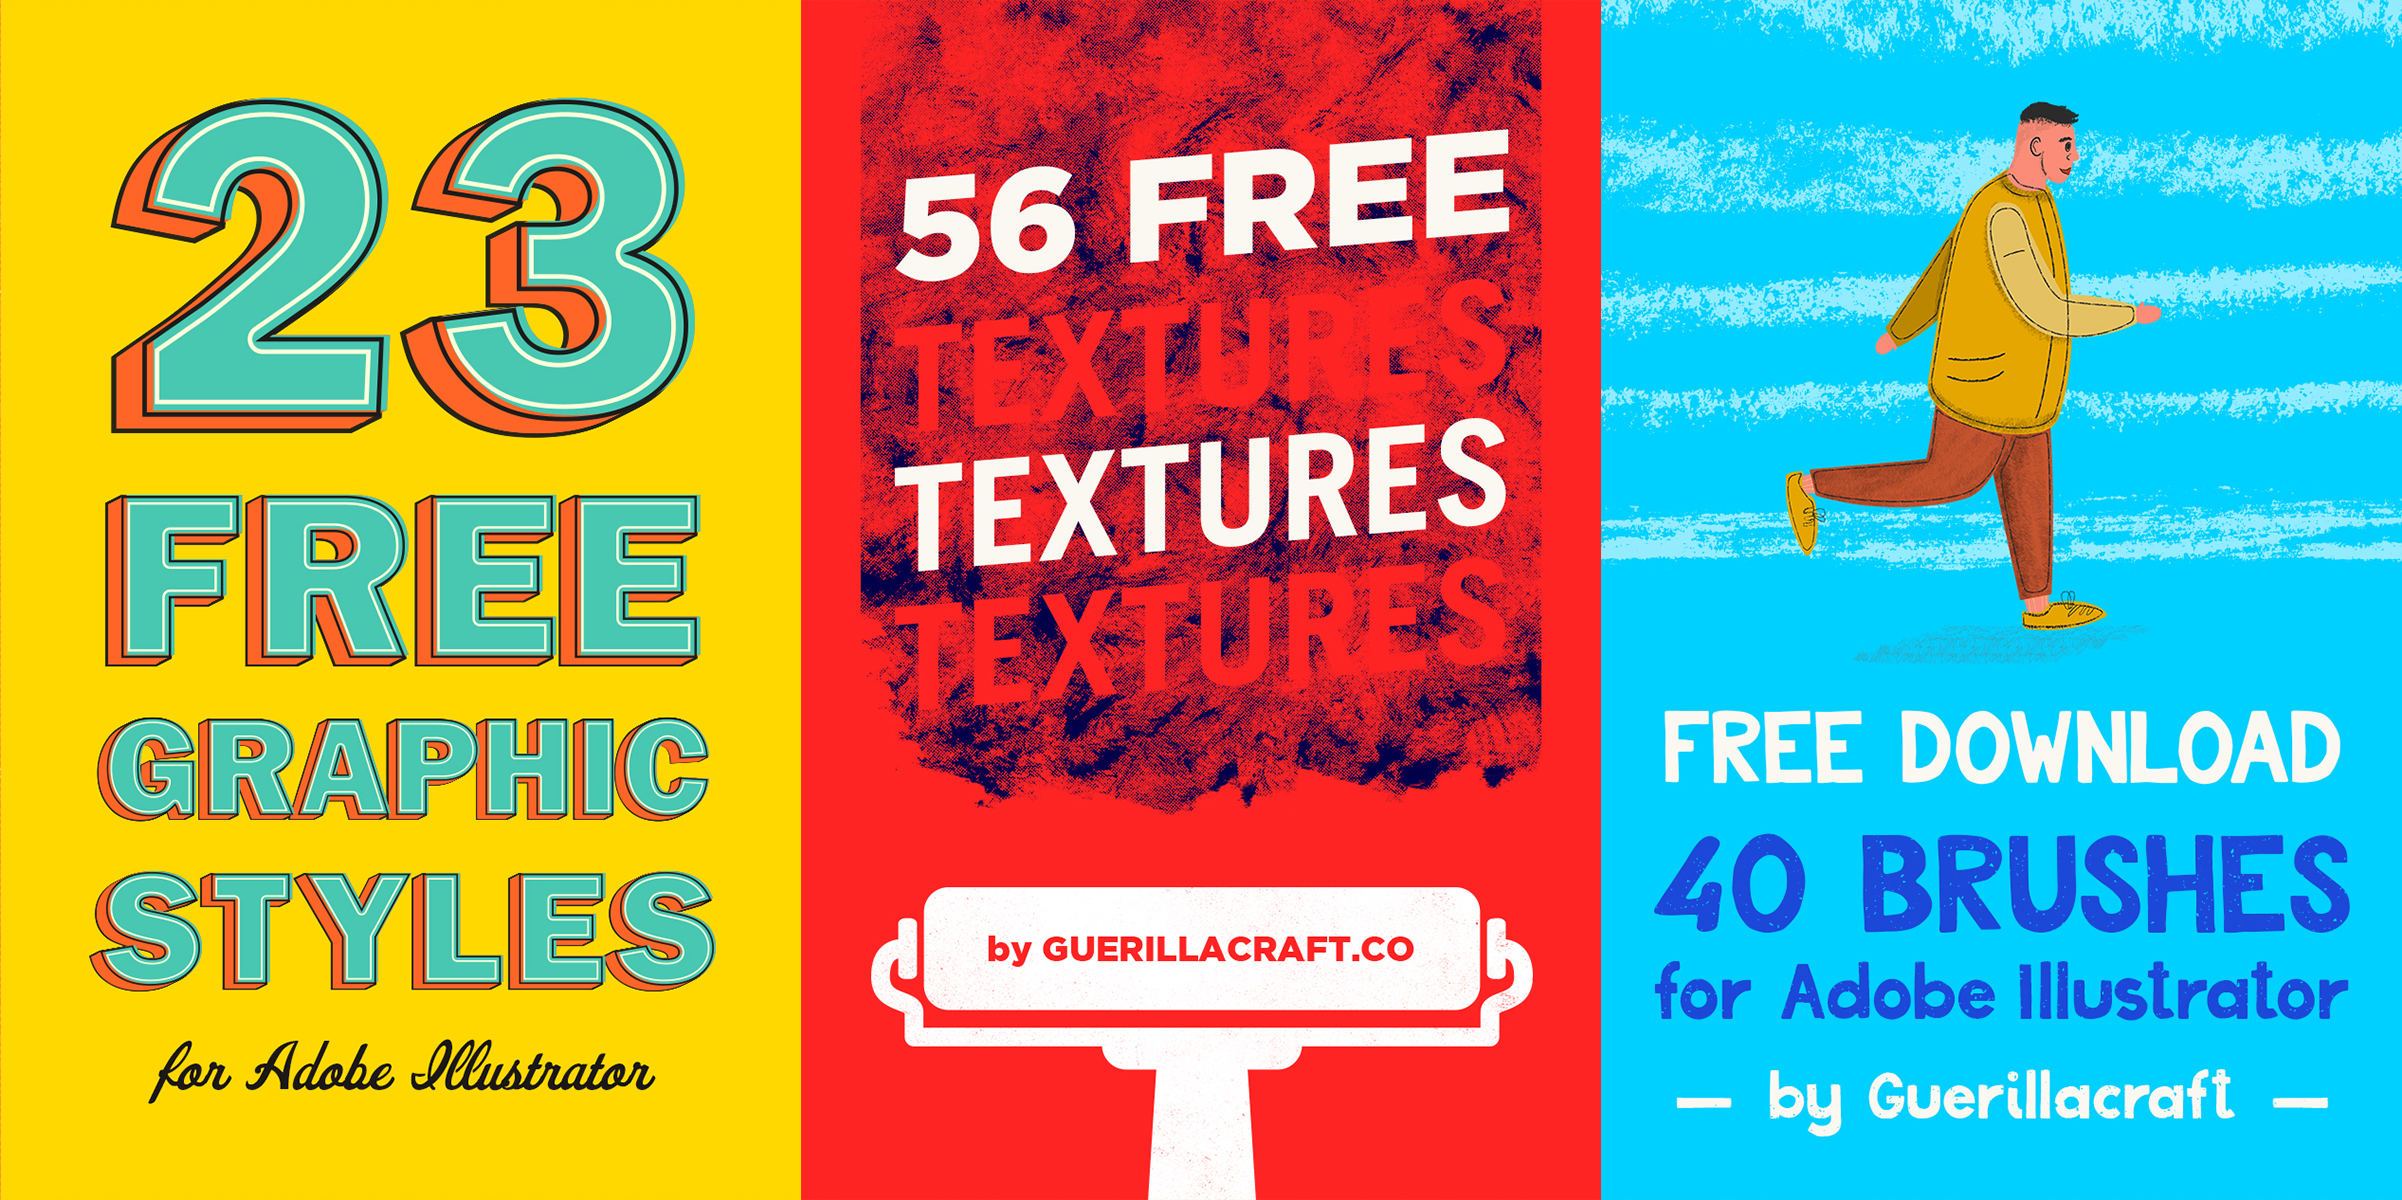 FREE DOWNLOAD of 23 Graphic styles, 56 textures and 41 brushes for Adobe Illustrator. Guerillacraft produces high-quality design resources and now offers the download of samples from premium products for FREE. With one click you will get access to Big Free Design Bundle containing 56 textures in EPS and PNG format, 41 brushes for Adobe Illustrator and 23 great graphics styles for Adobe Illustrator. Get them all without spending a cent! Just click on image and download them for FREE